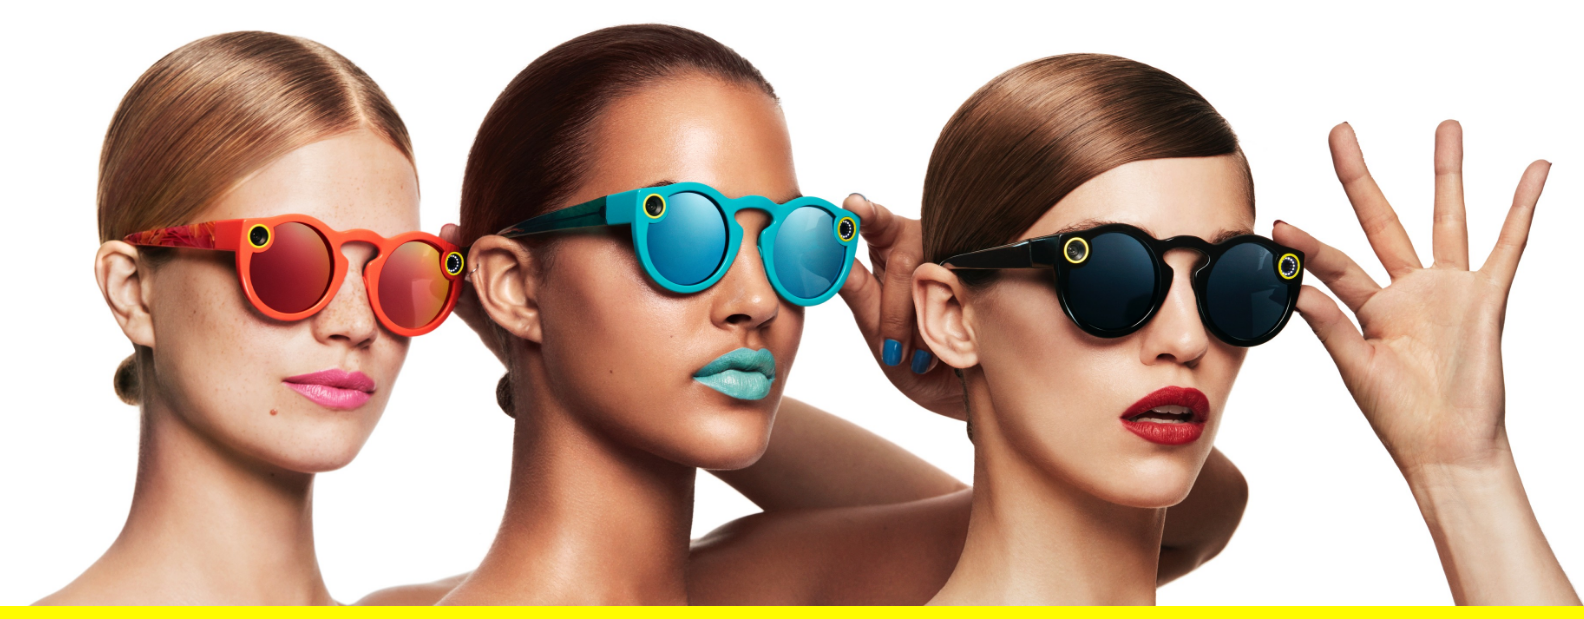 What's Next for Snapchat? A Look at Snap Inc Ahead of Their Q2 Results   Social Media Today